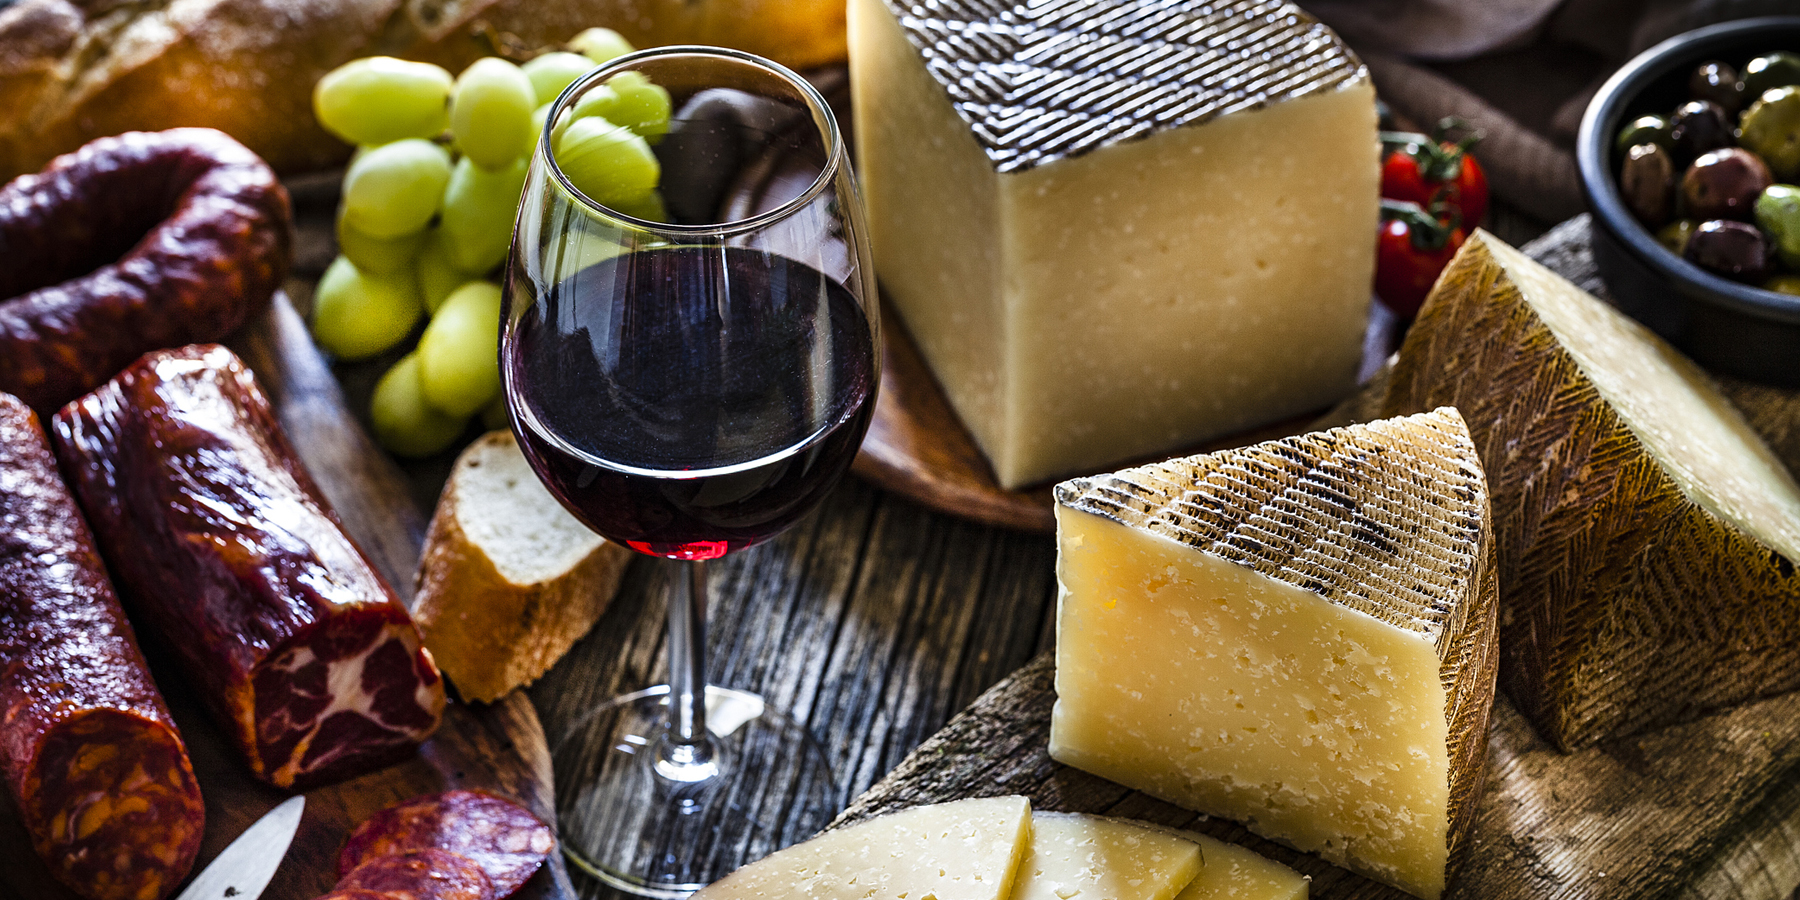 Could Foods Such as Cheese and Wine Reduce Cognitive Decline?